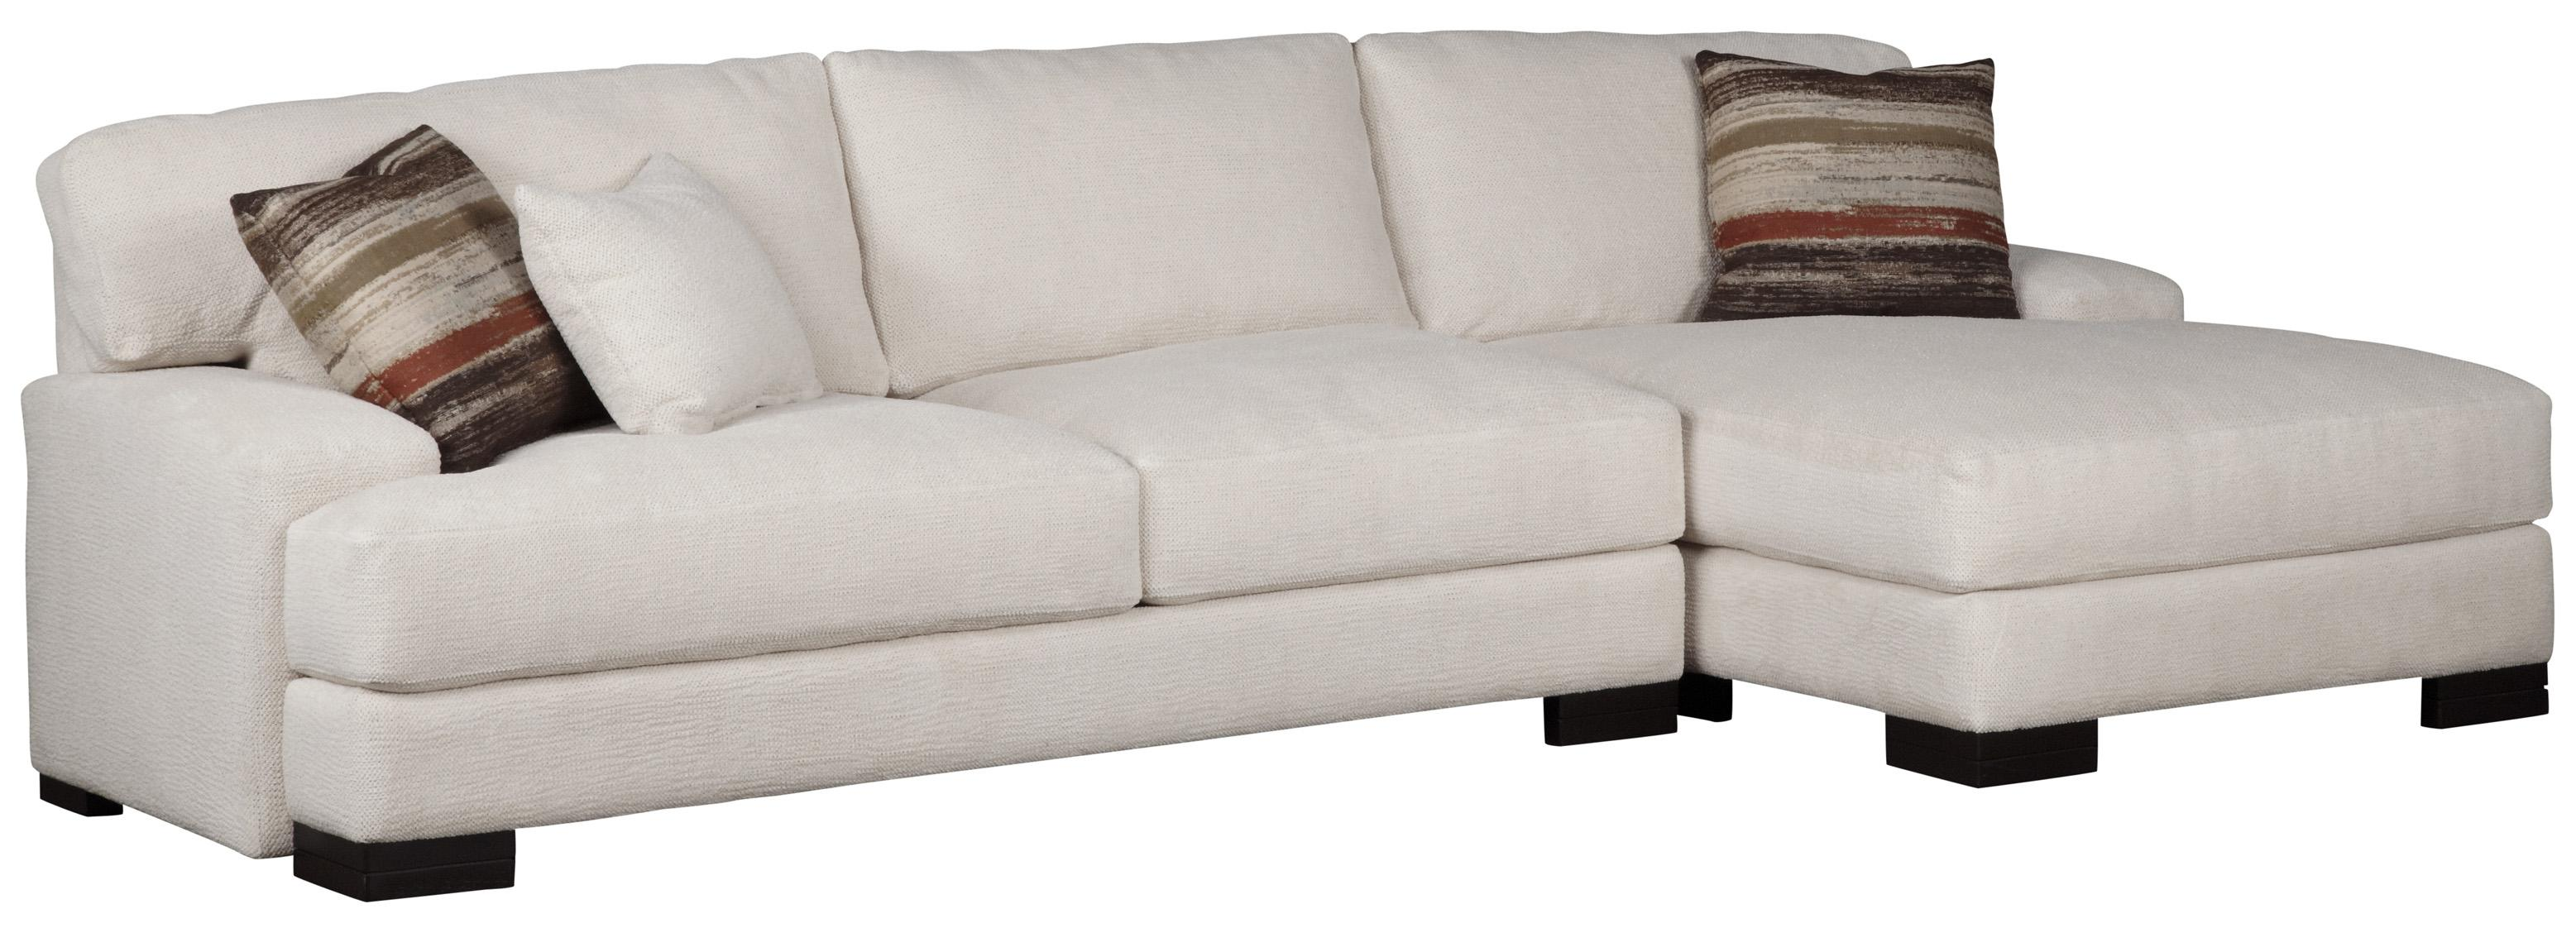 Jonathan Louis Burton Sectional With Chaise   Item Number: 37035L+82R